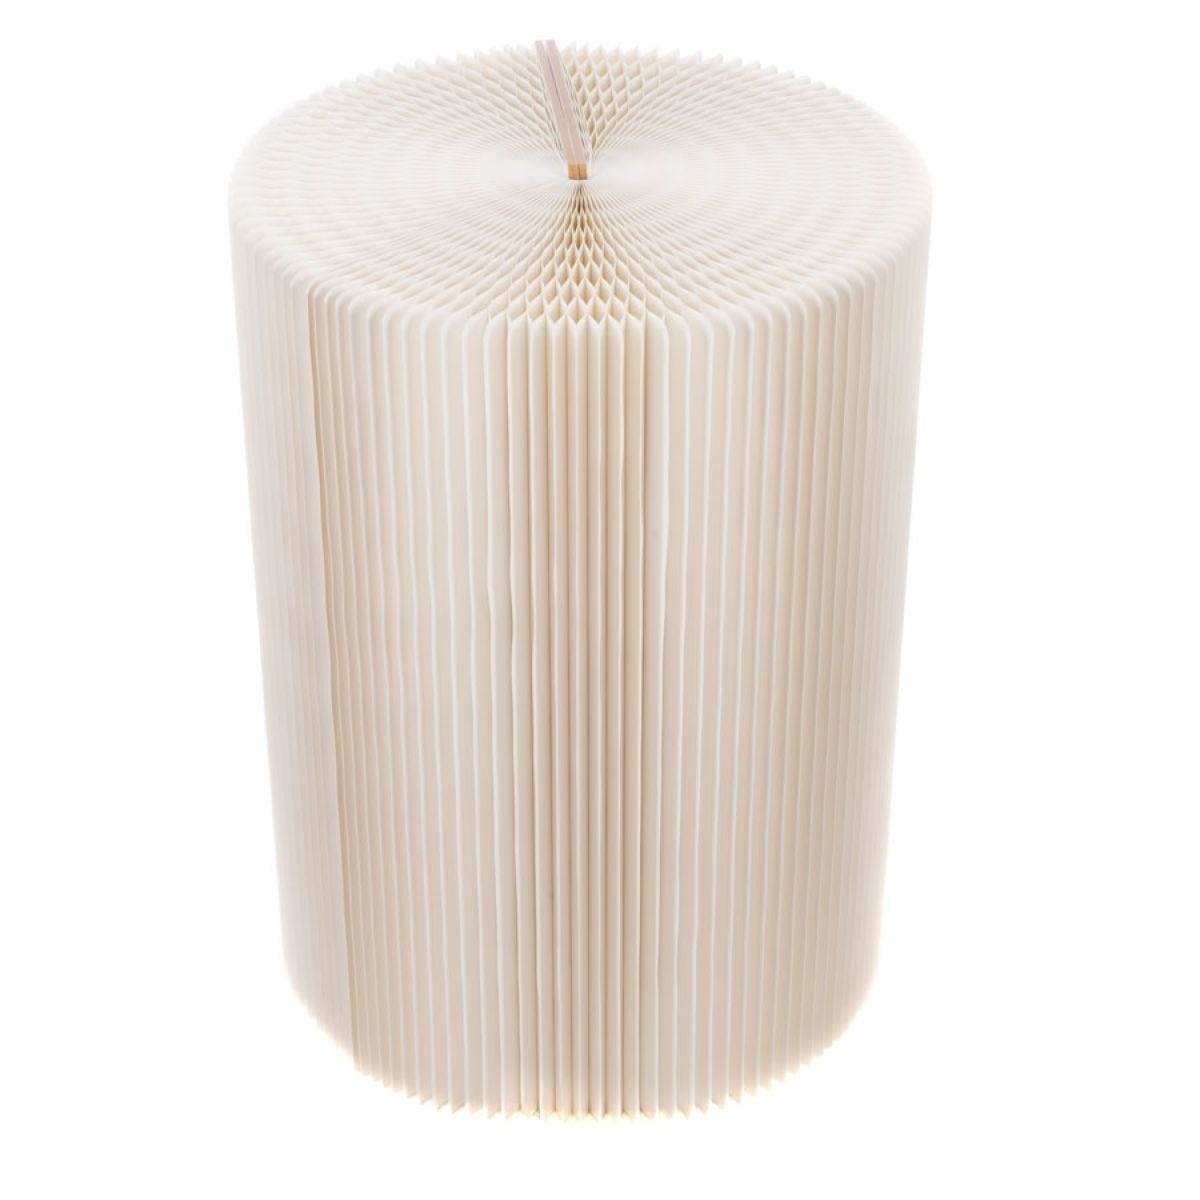 Paper Lounge 70cm Tall Concertina Table - White